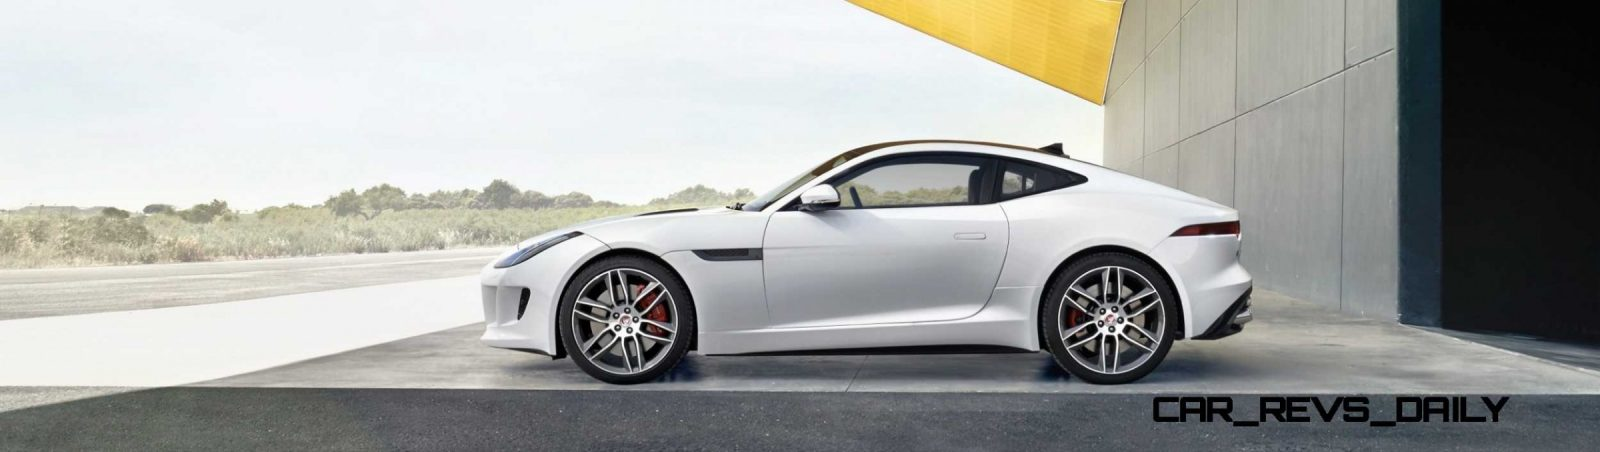 Jaguar Makes a WINNER!  2015 F-type R Coupe Debut1